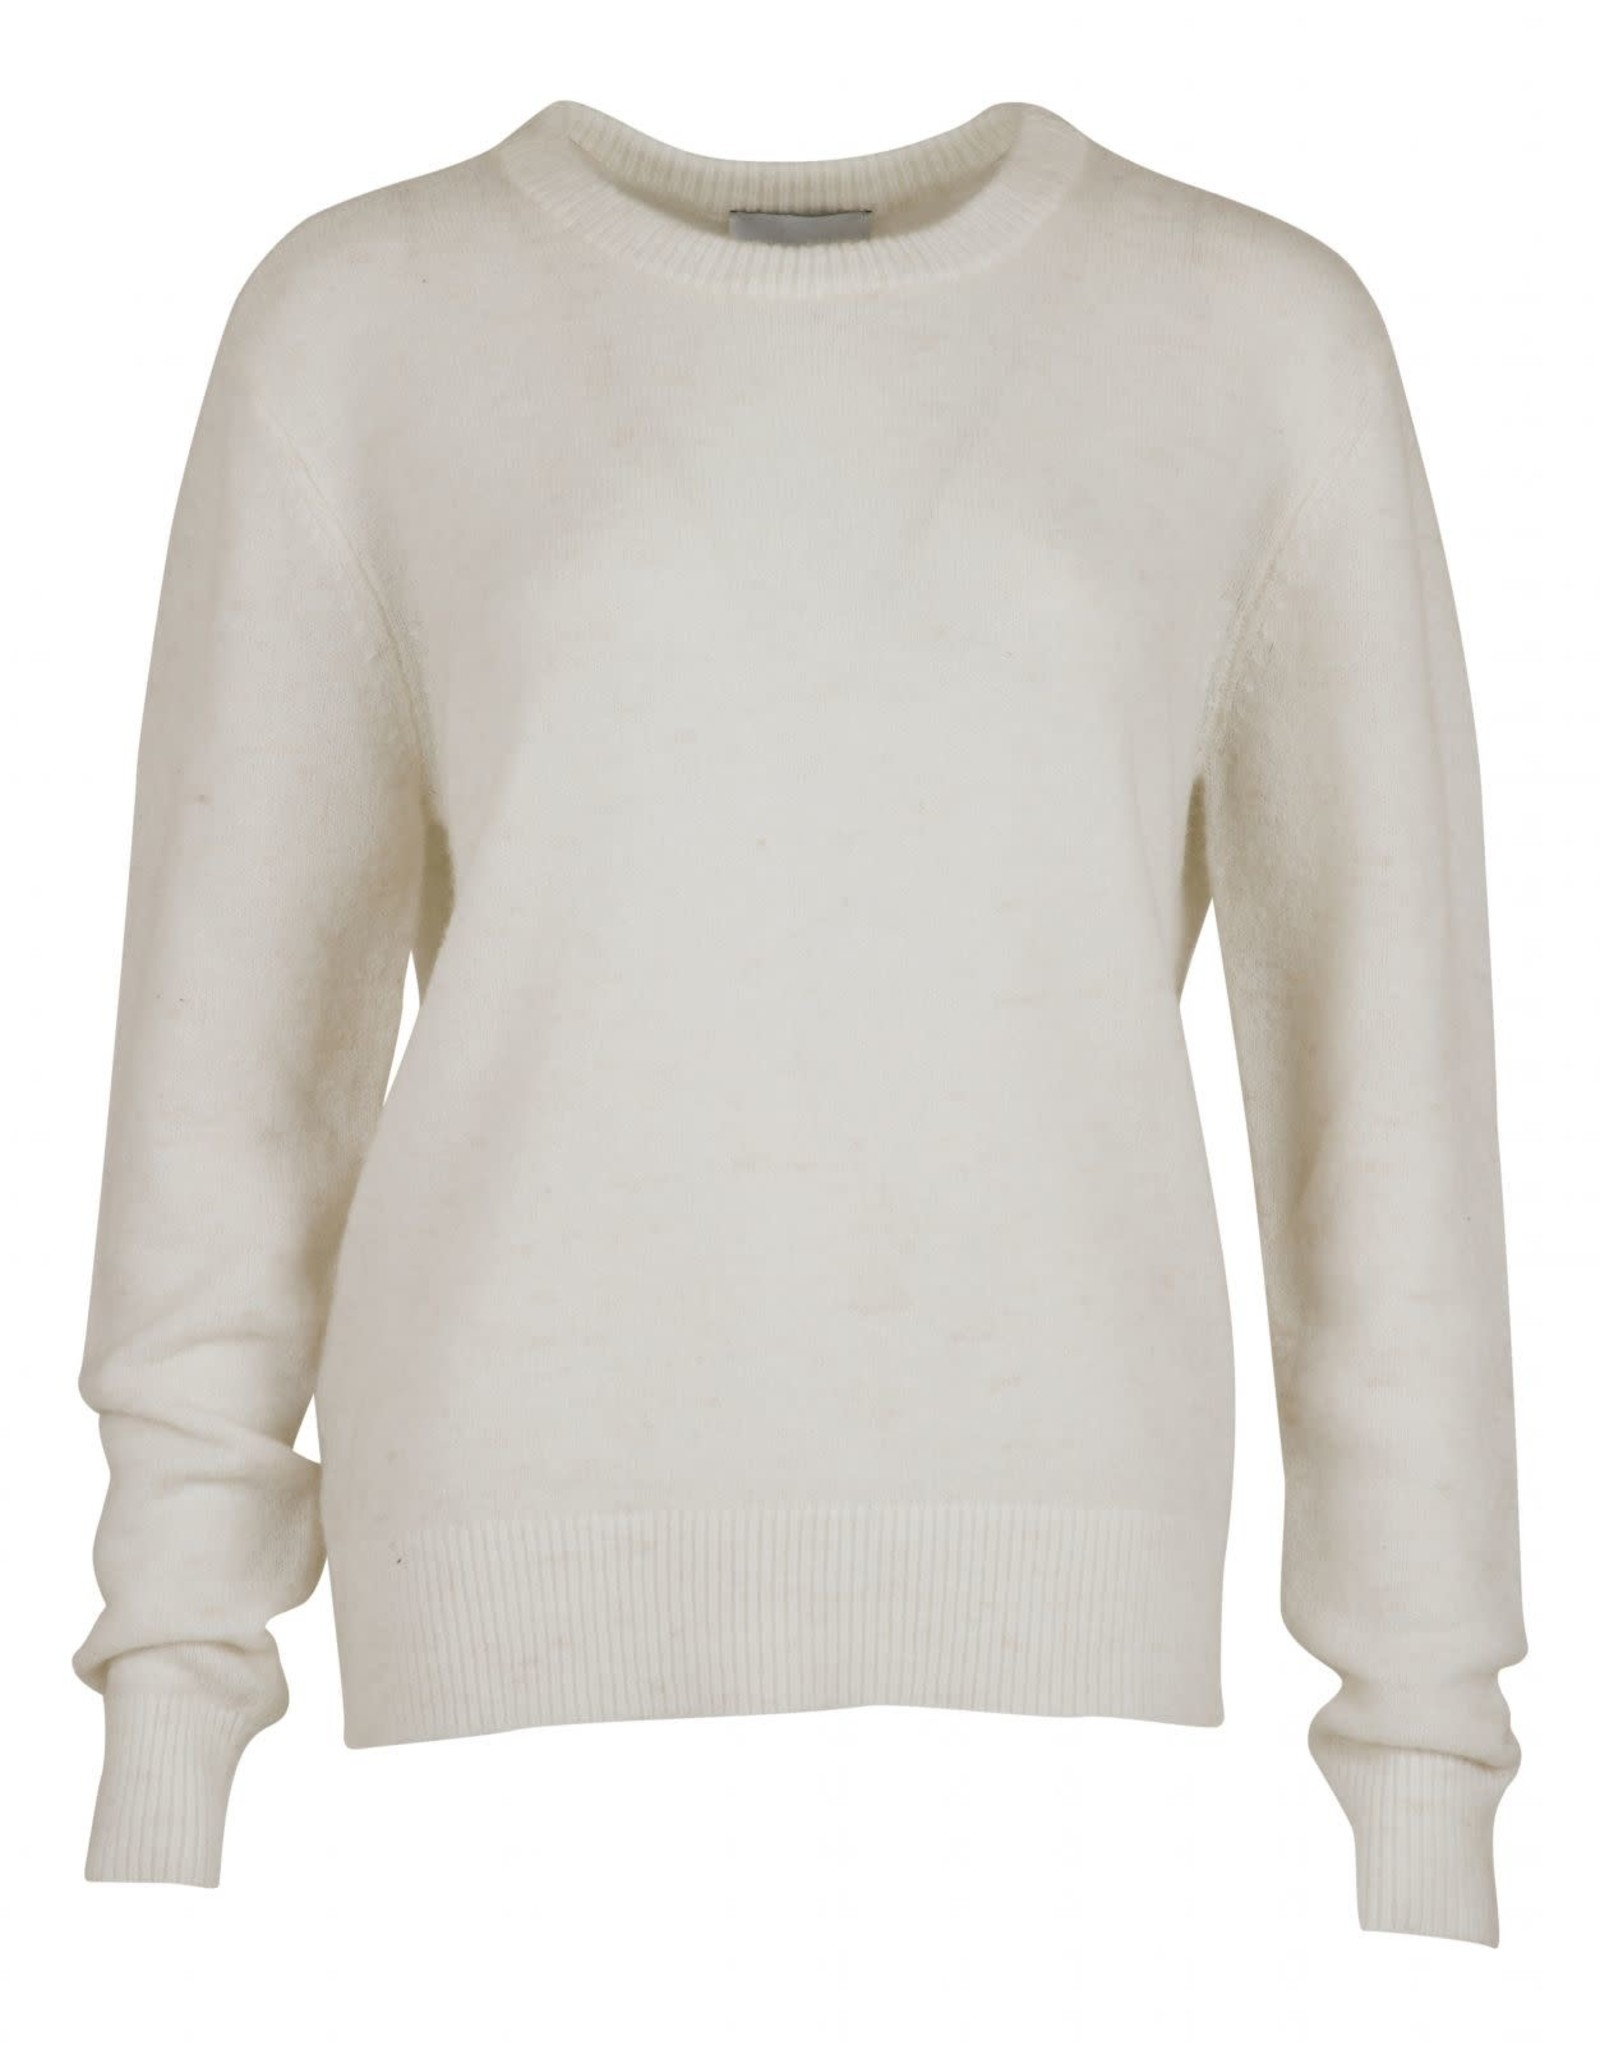 Pull 'Dina' - Offwhite